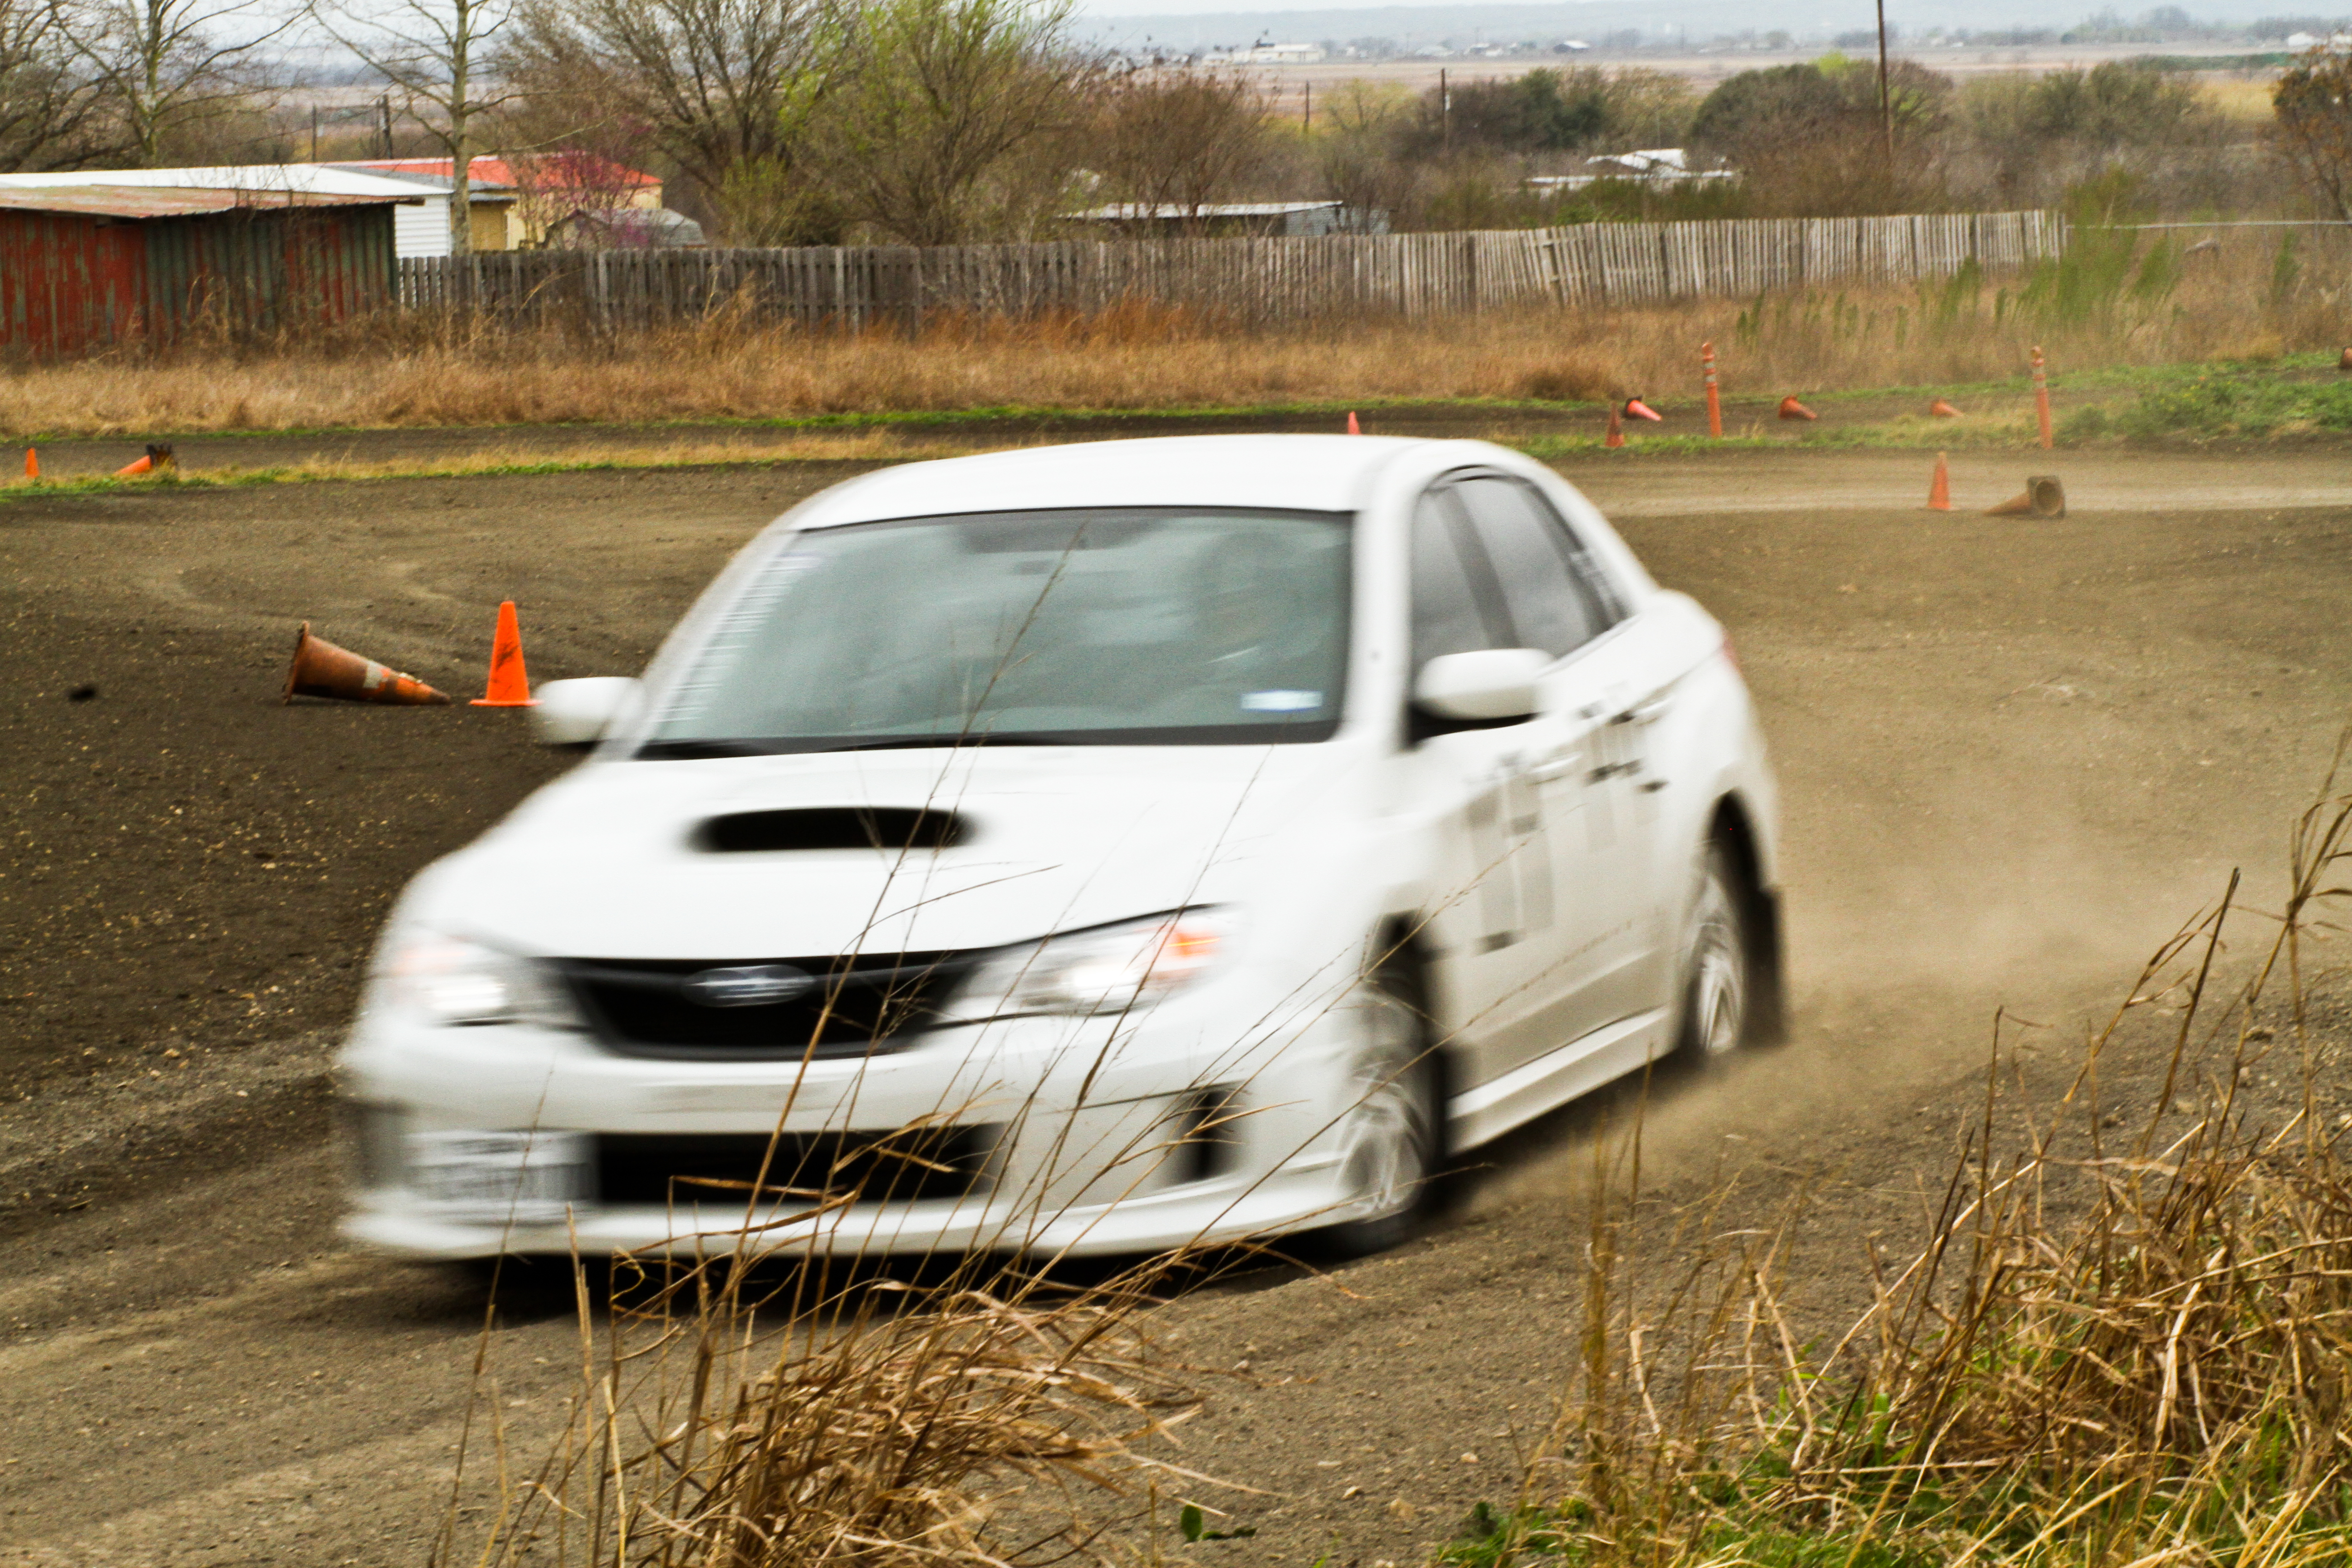 The Need for Speed - Rally Car Racing in Austin - HCLB